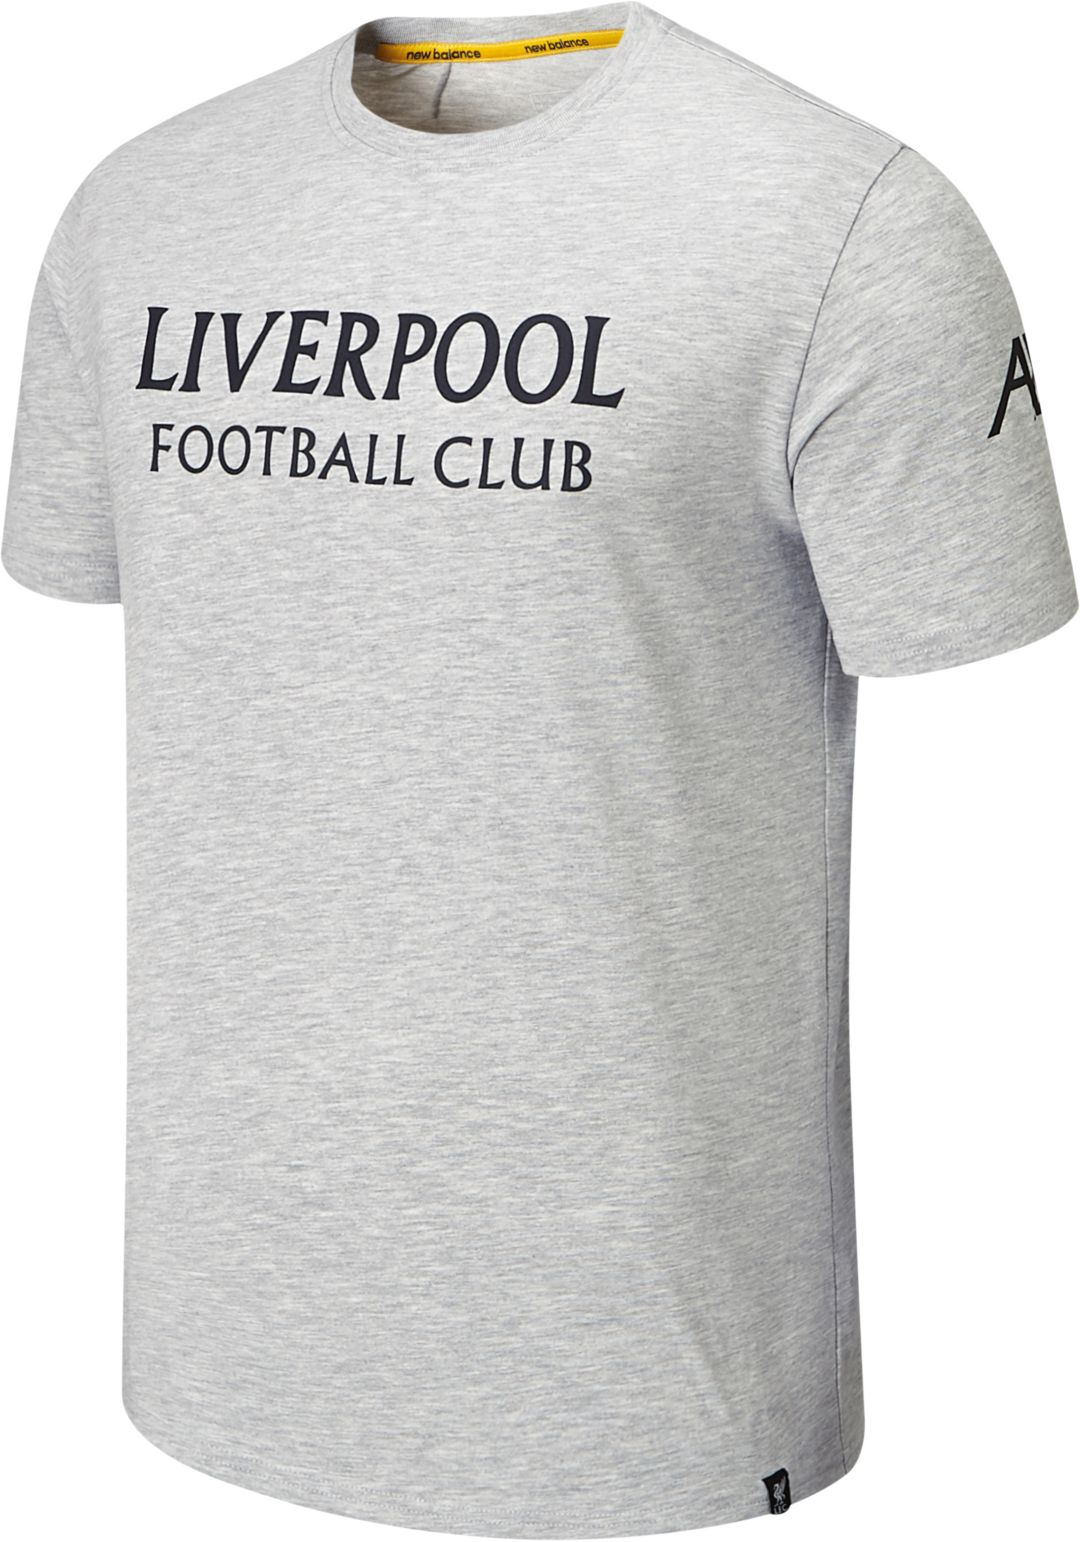 finest selection 2c19f aee32 New Balance Men's Liverpool FC Travel Graphic Heather Grey T-Shirt